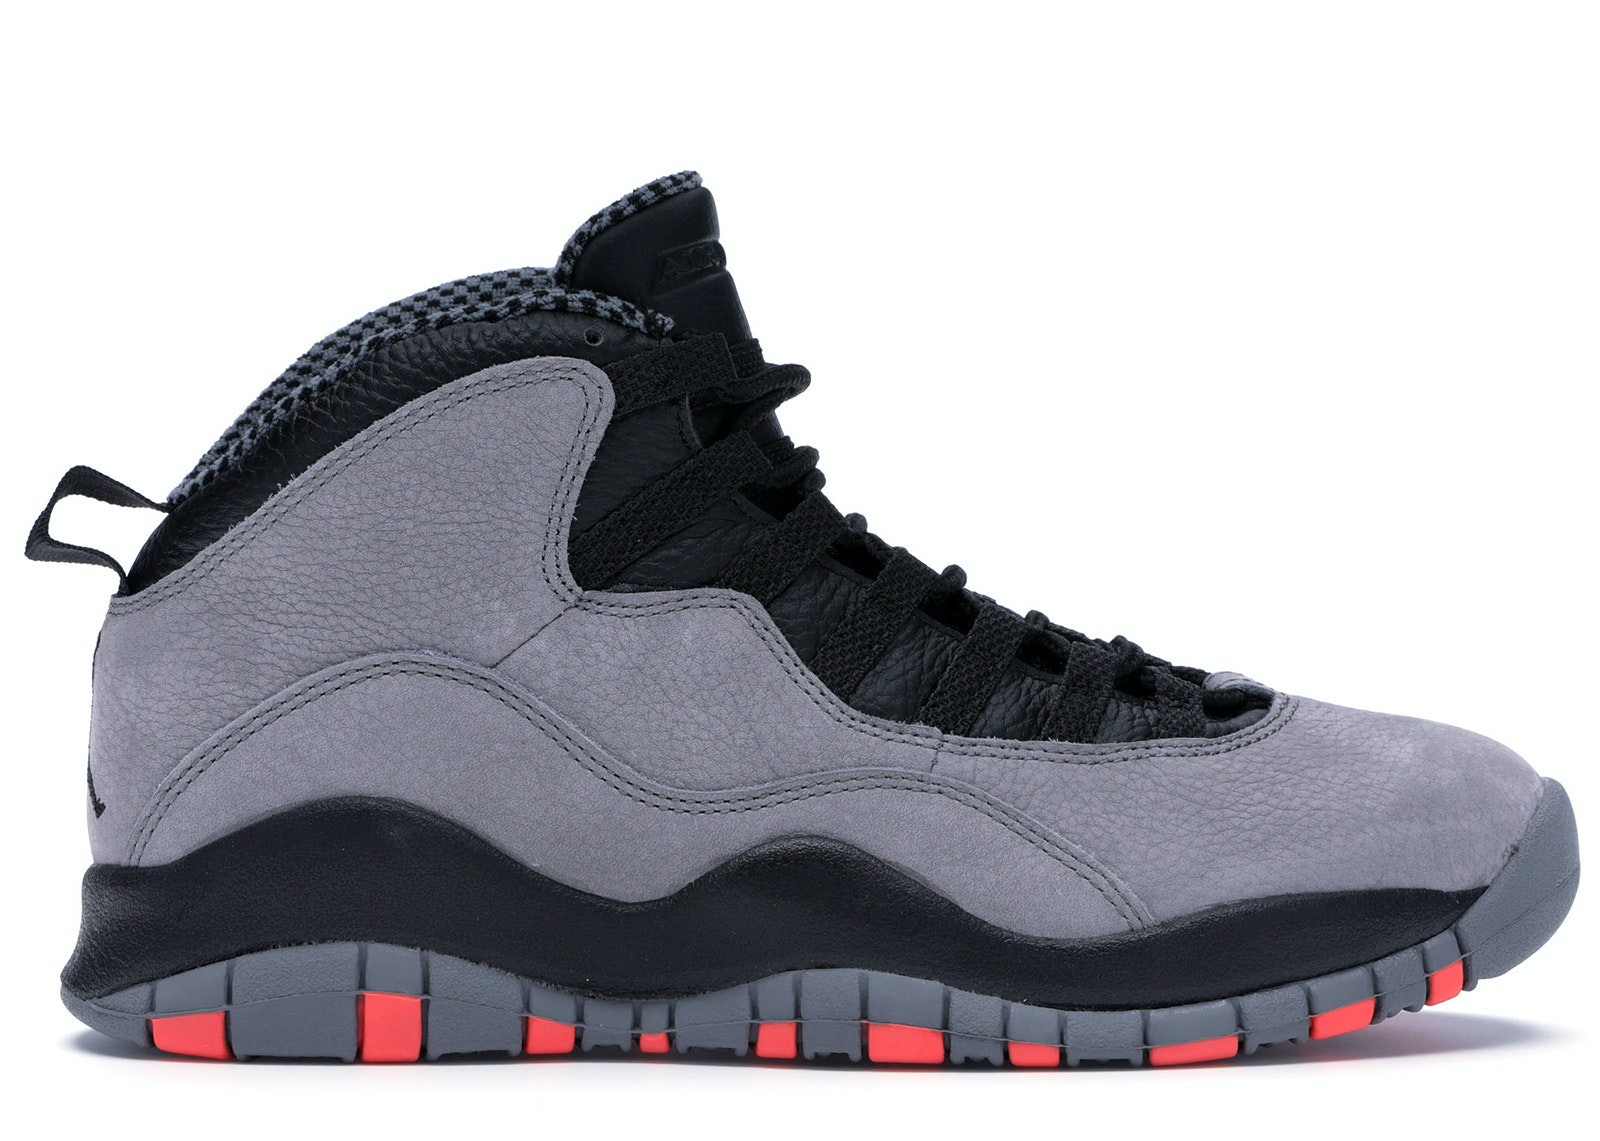 Jordan 10 Retro Cool Grey